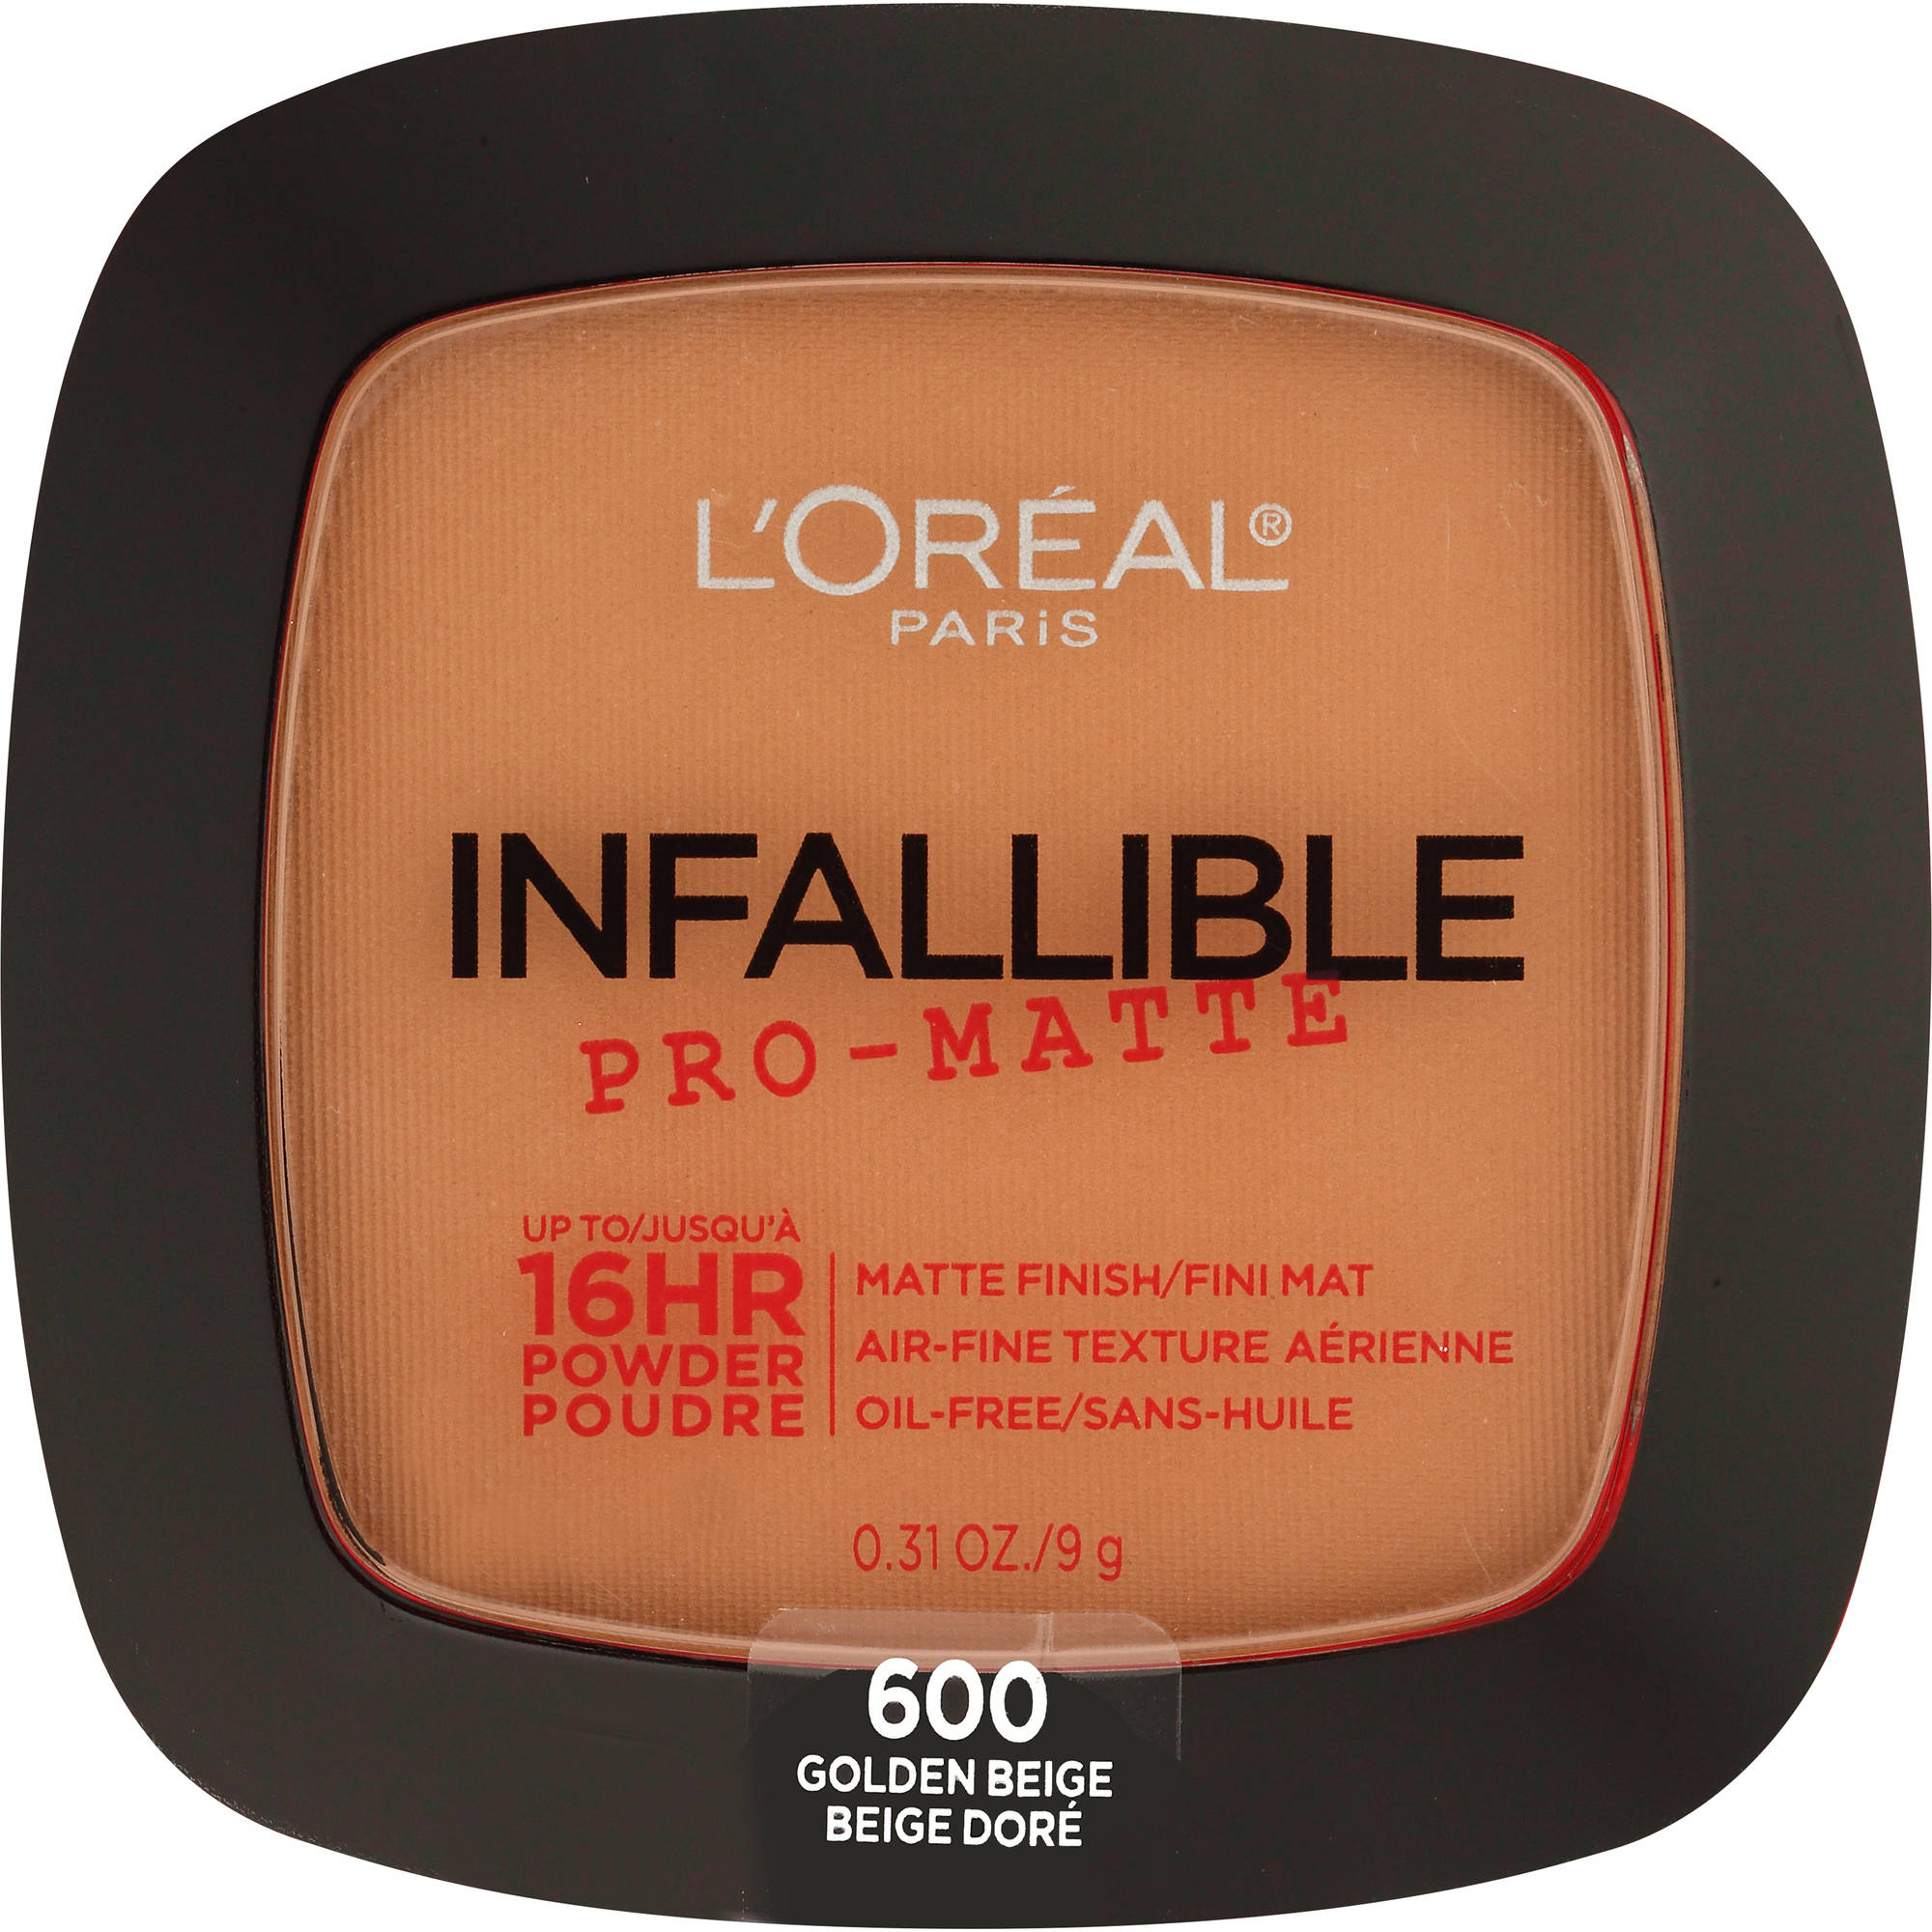 L'Oreal Paris Infallible Pro-Matte Pressed Powder